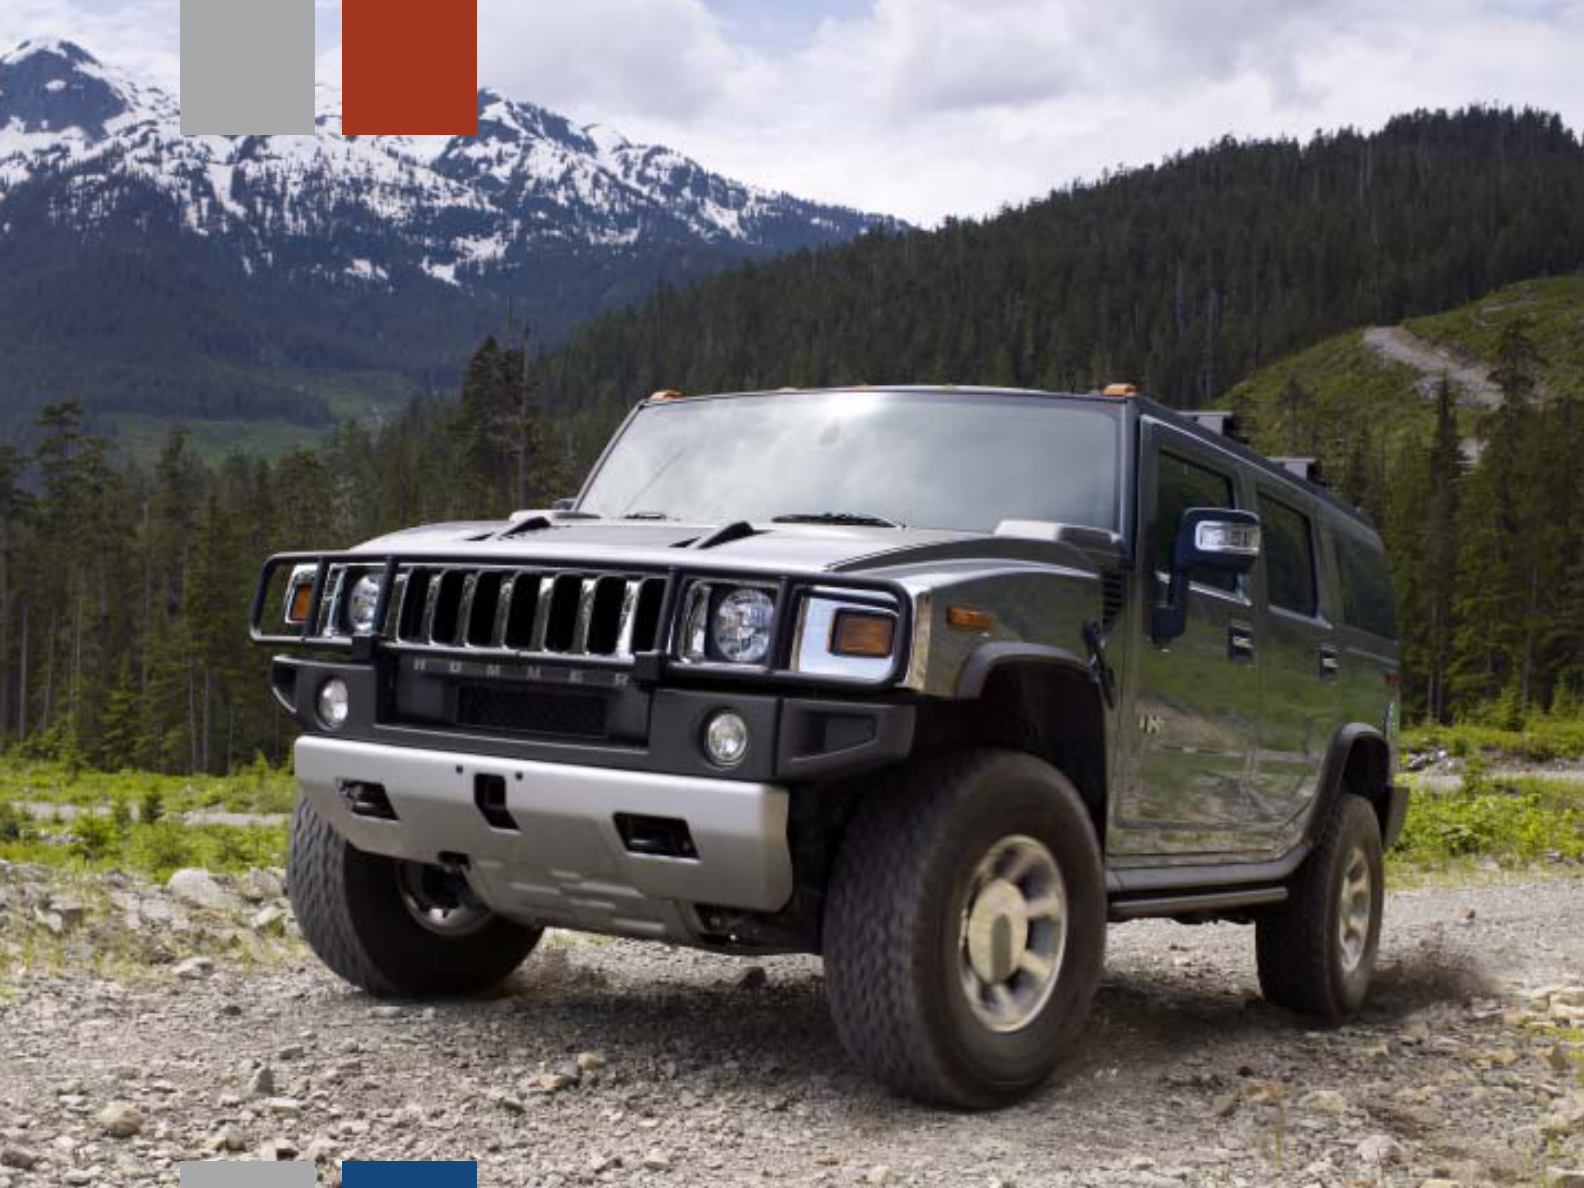 See our other Hummer H2 Manuals: Hummer H2 2006 Owners Manual